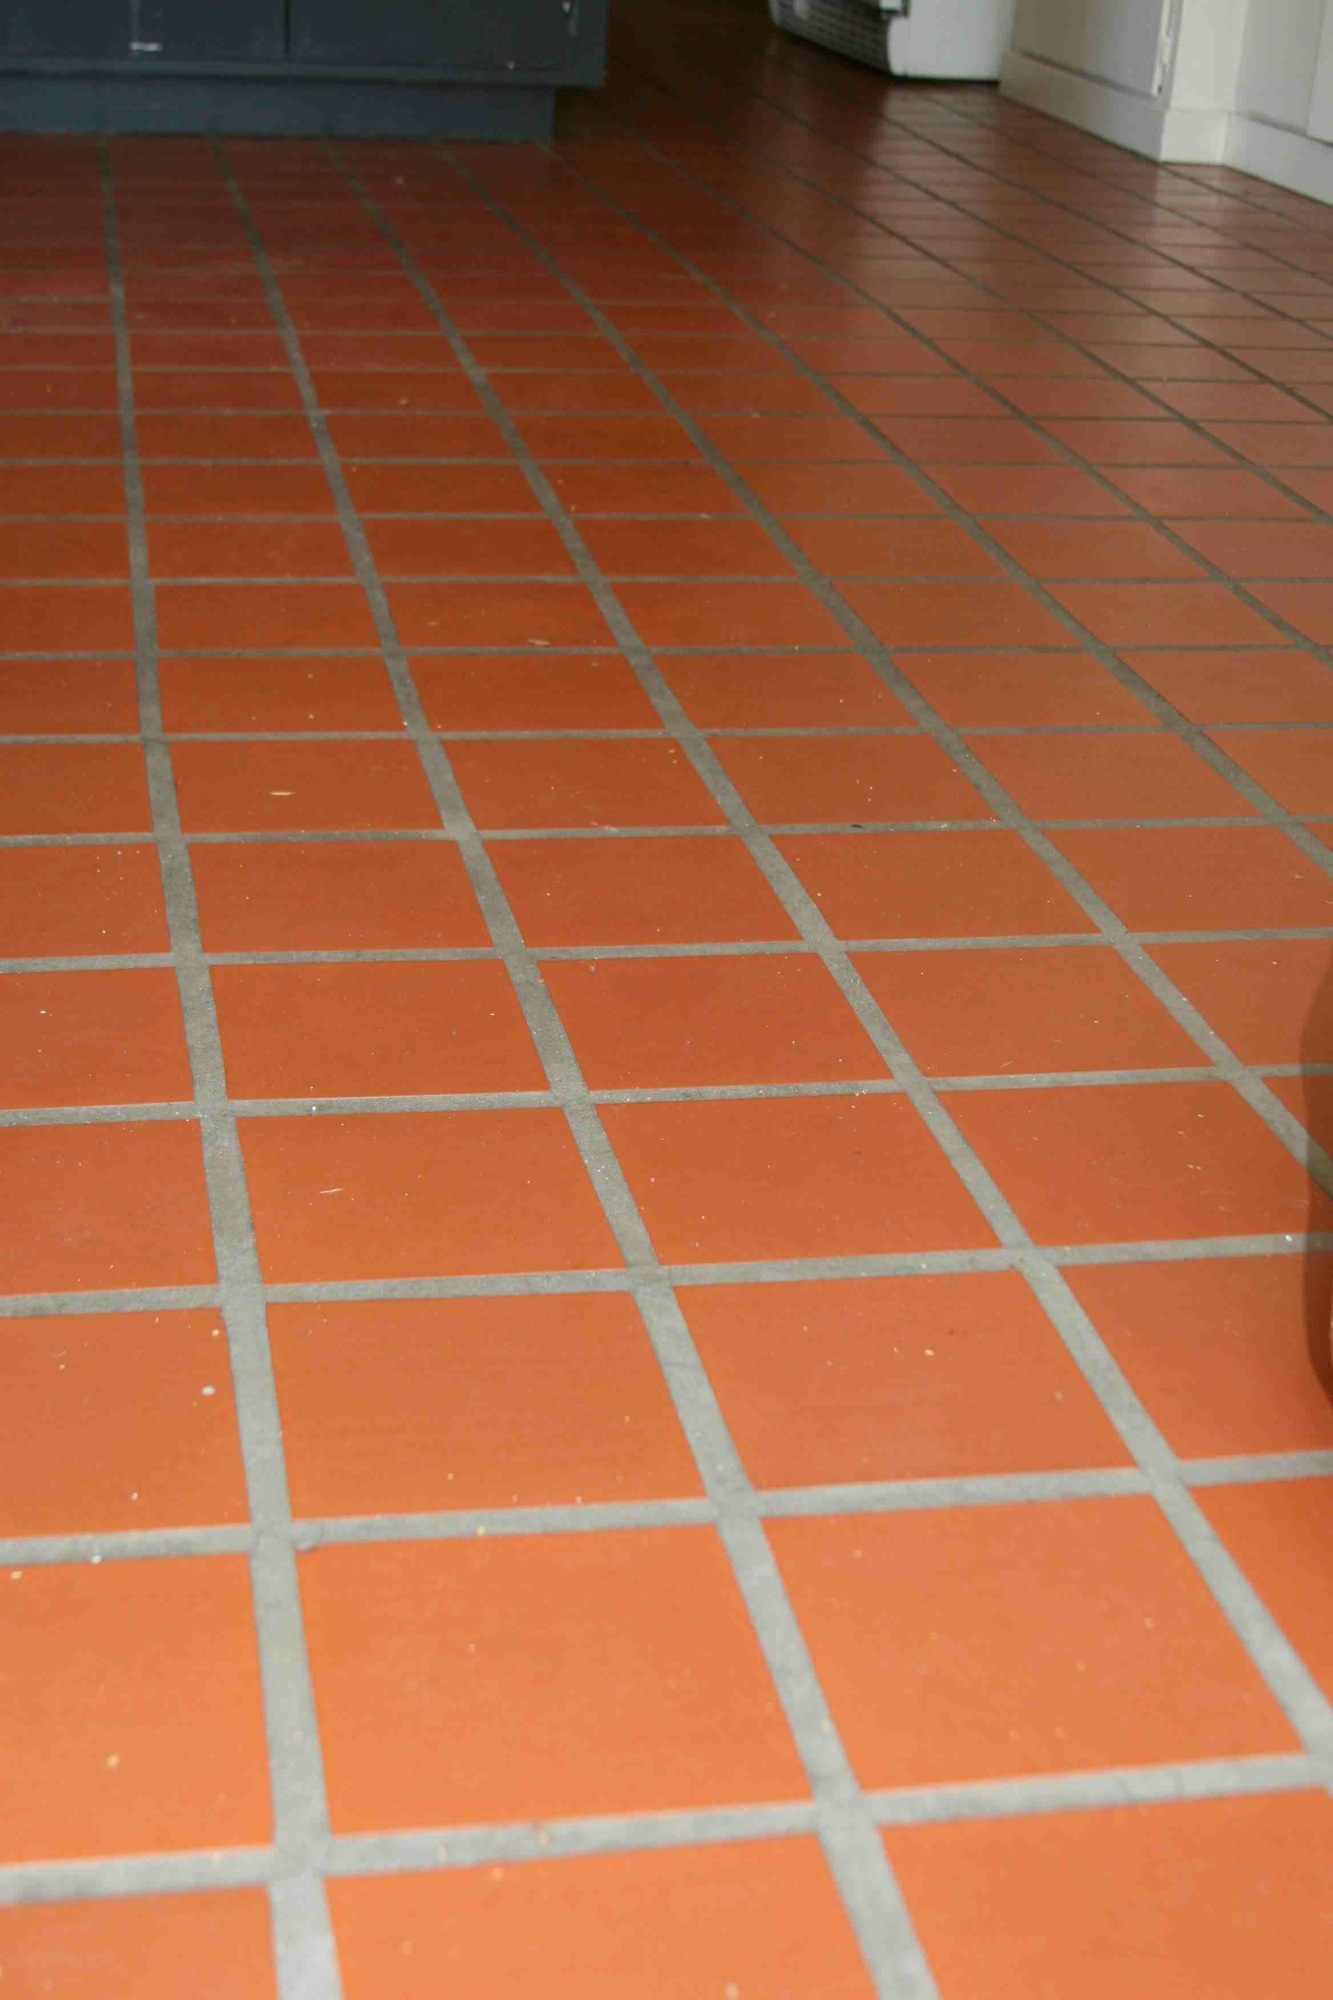 Cork Floor In Kitchen Yay Cork Flooring Going Over Bad Kitchen Tile Brand Hang